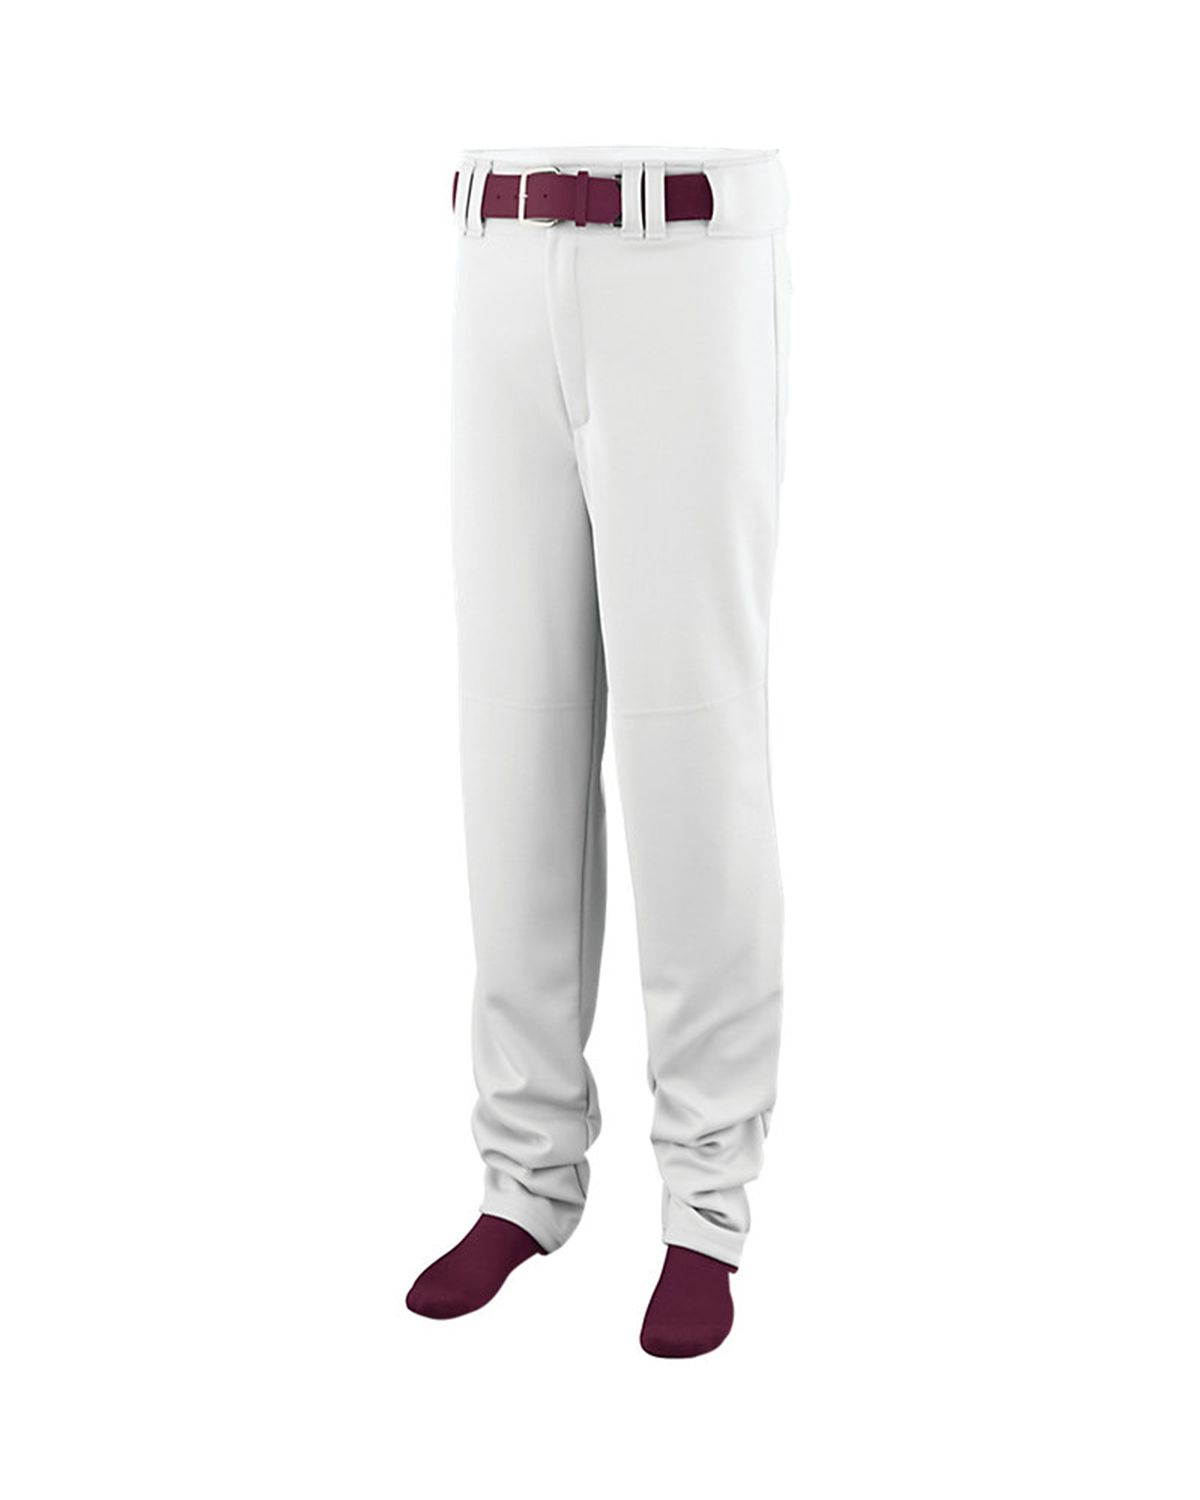 Augusta Sportswear 1440 Men's Series Baseball/Softball Pant